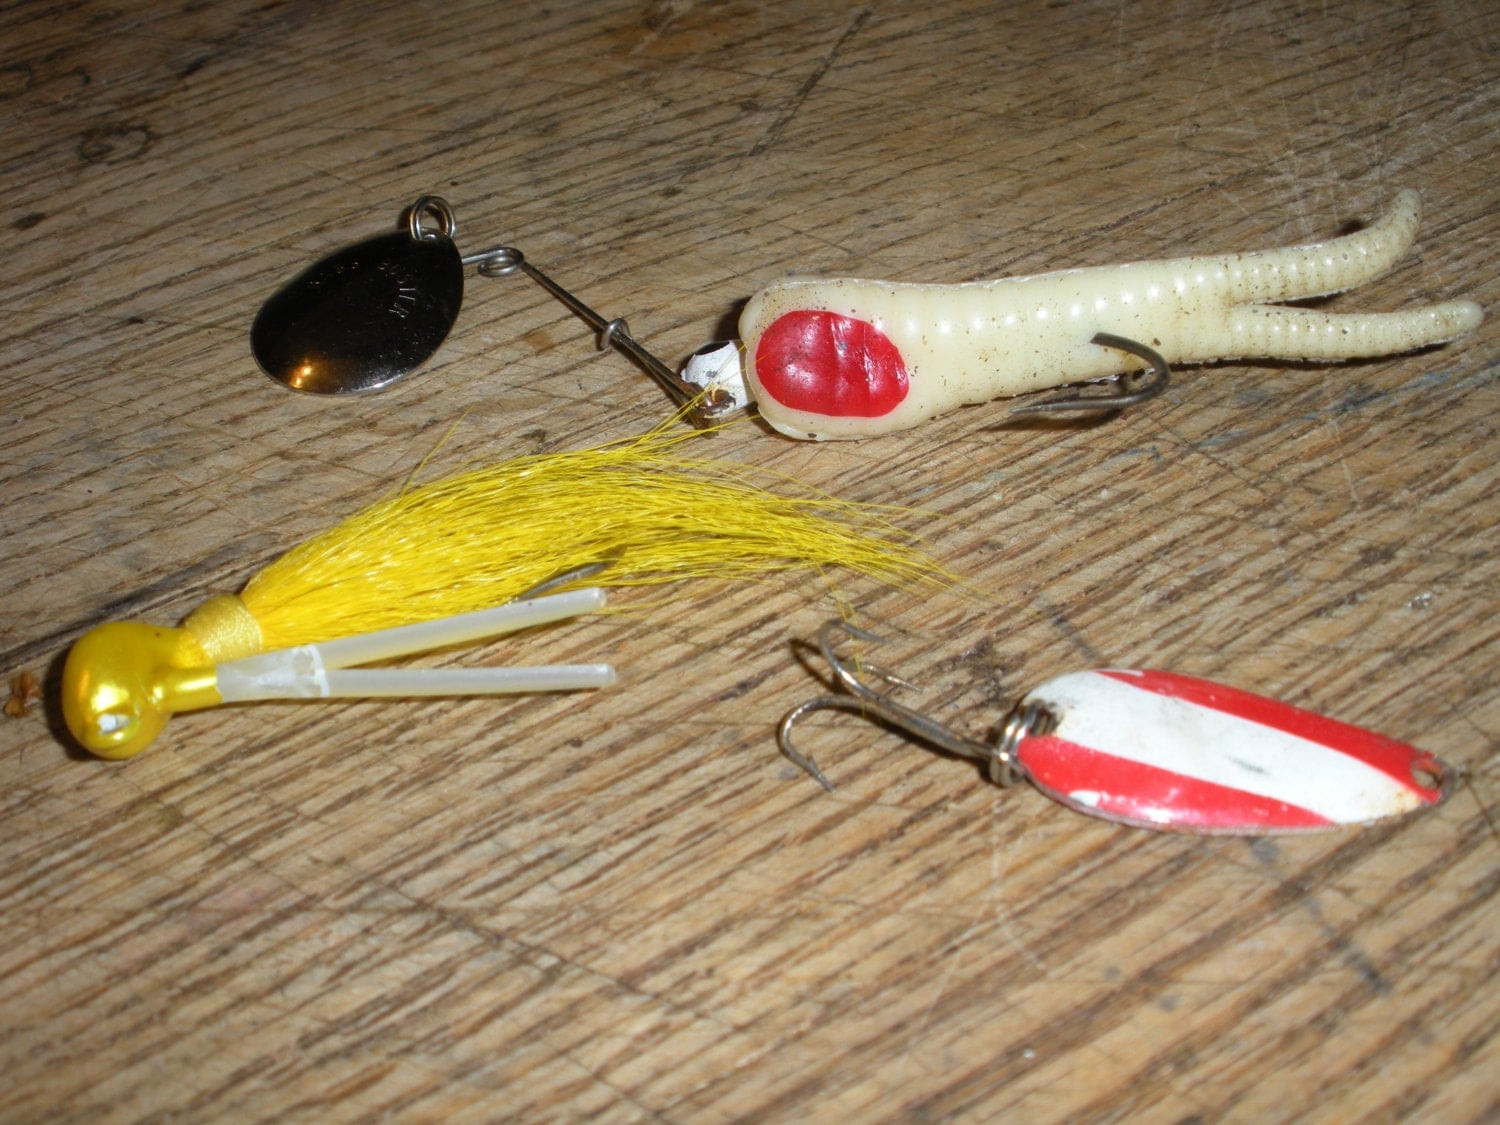 Three vintage fishing lake lures by coloradobackroads on etsy for Vintage fishing lure identification